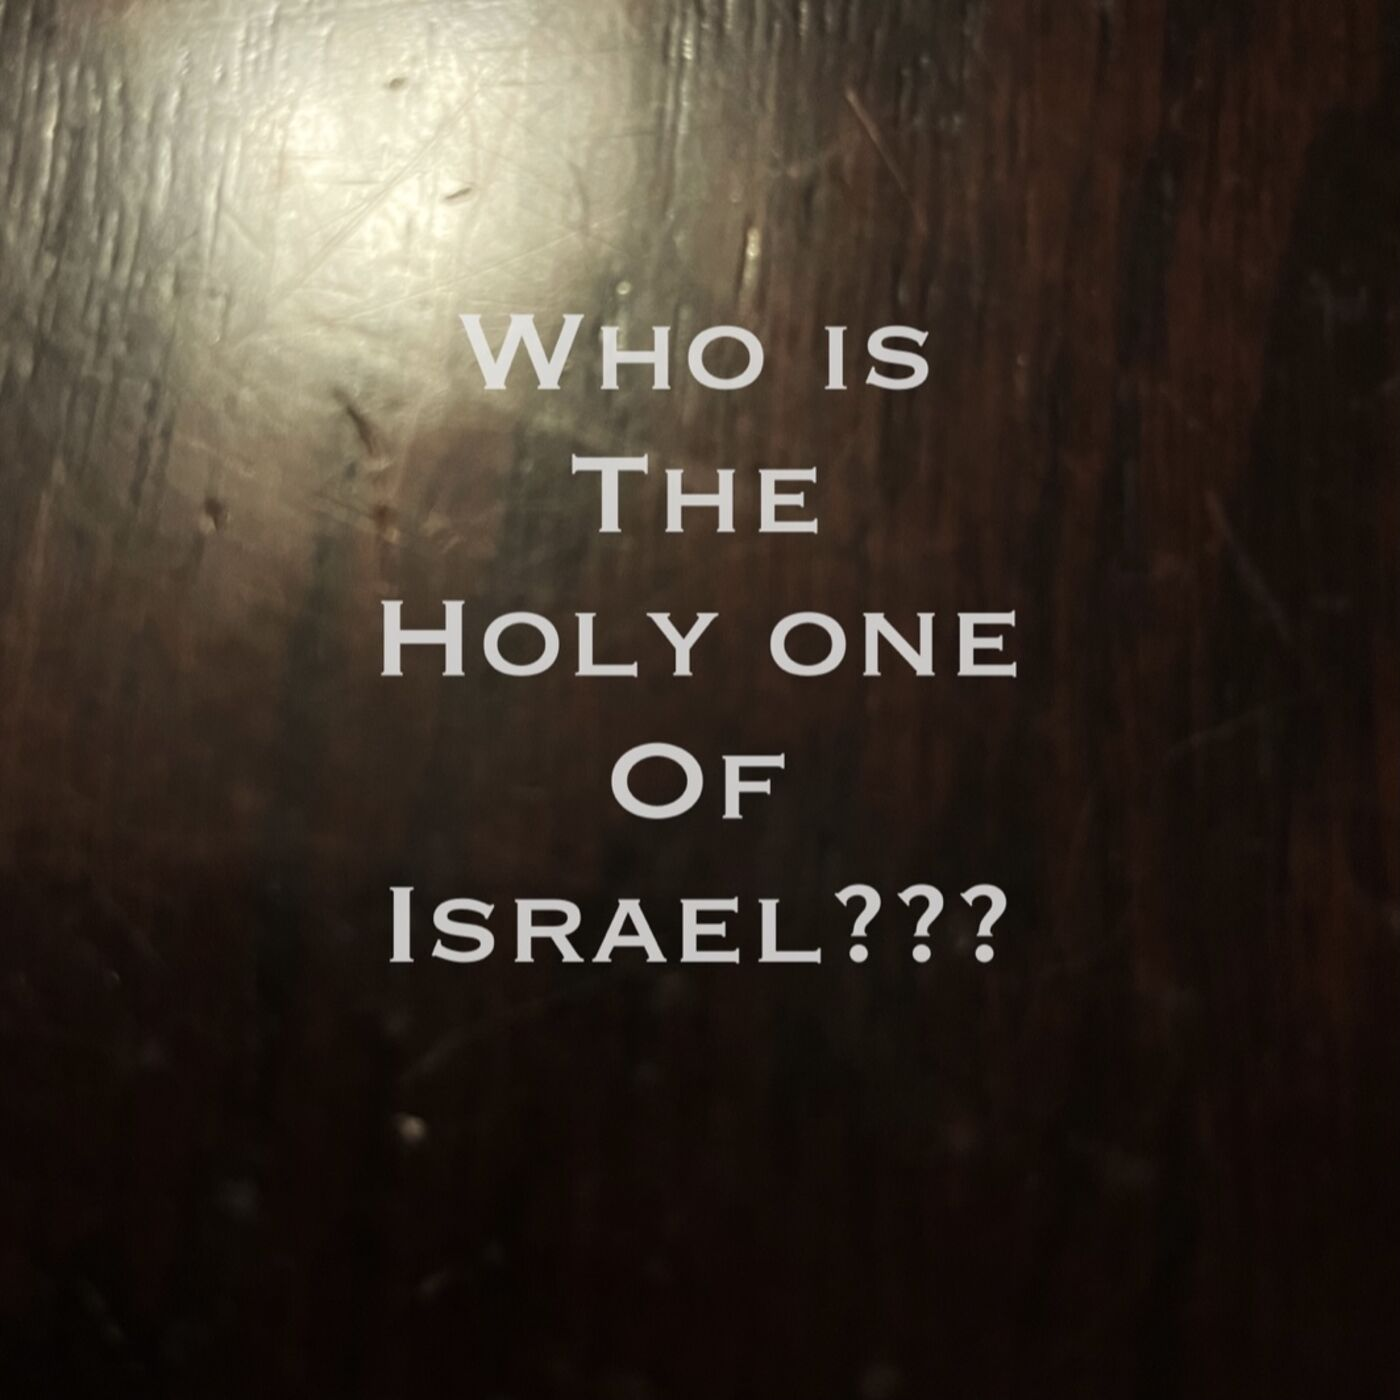 100. WDBOMT about the Holy One of Israel